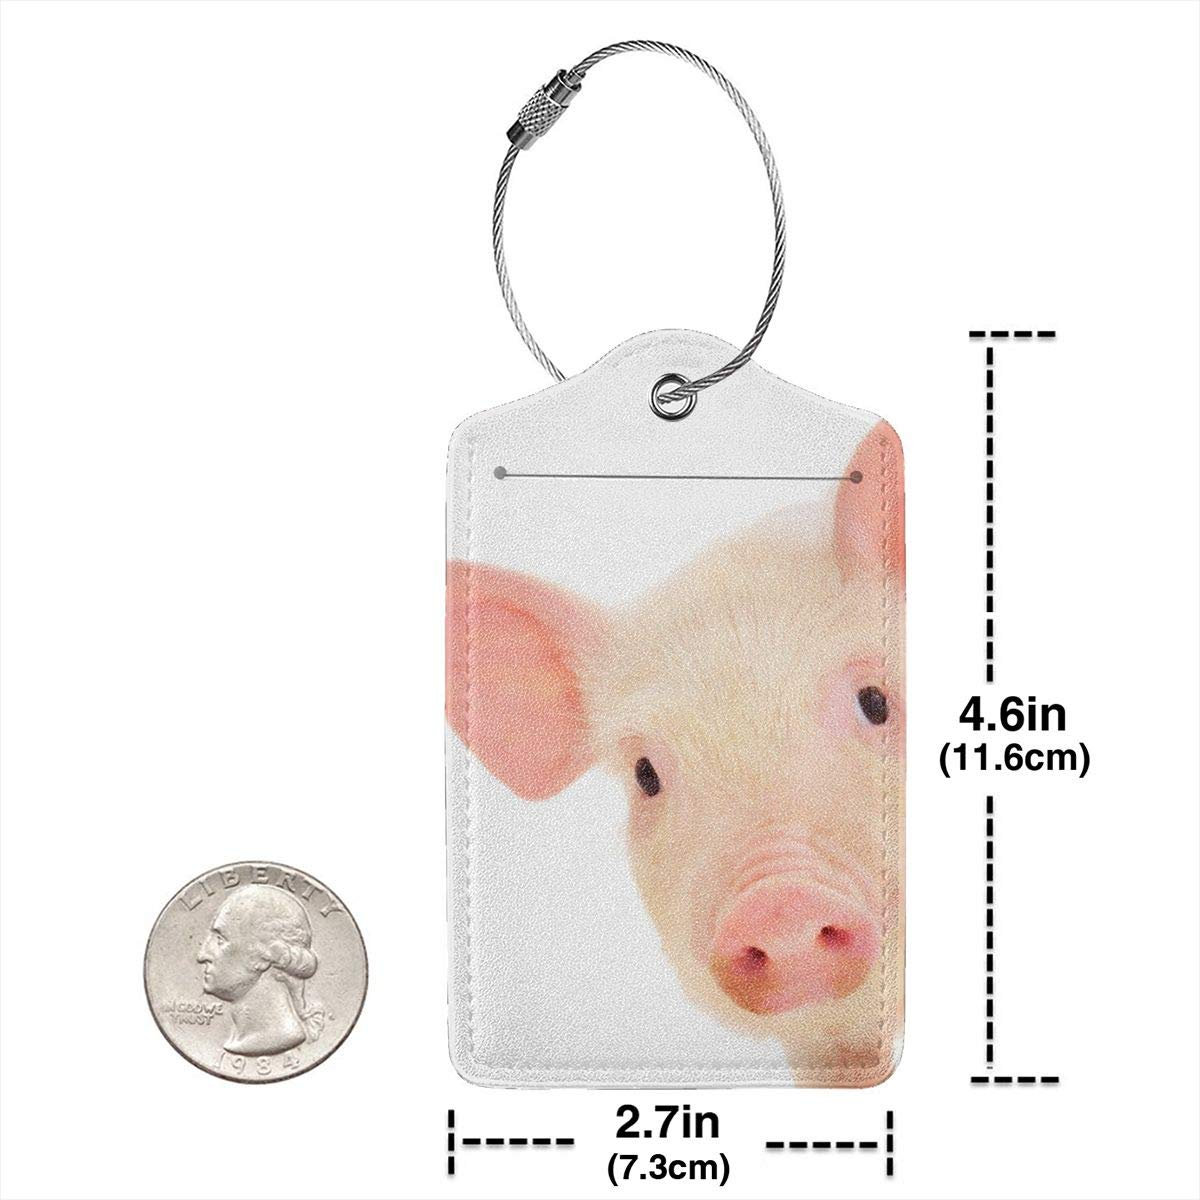 Cute Piglets Animal Pig Luggage Tag Label Travel Bag Label With Privacy Cover Luggage Tag Leather Personalized Suitcase Tag Travel Accessories